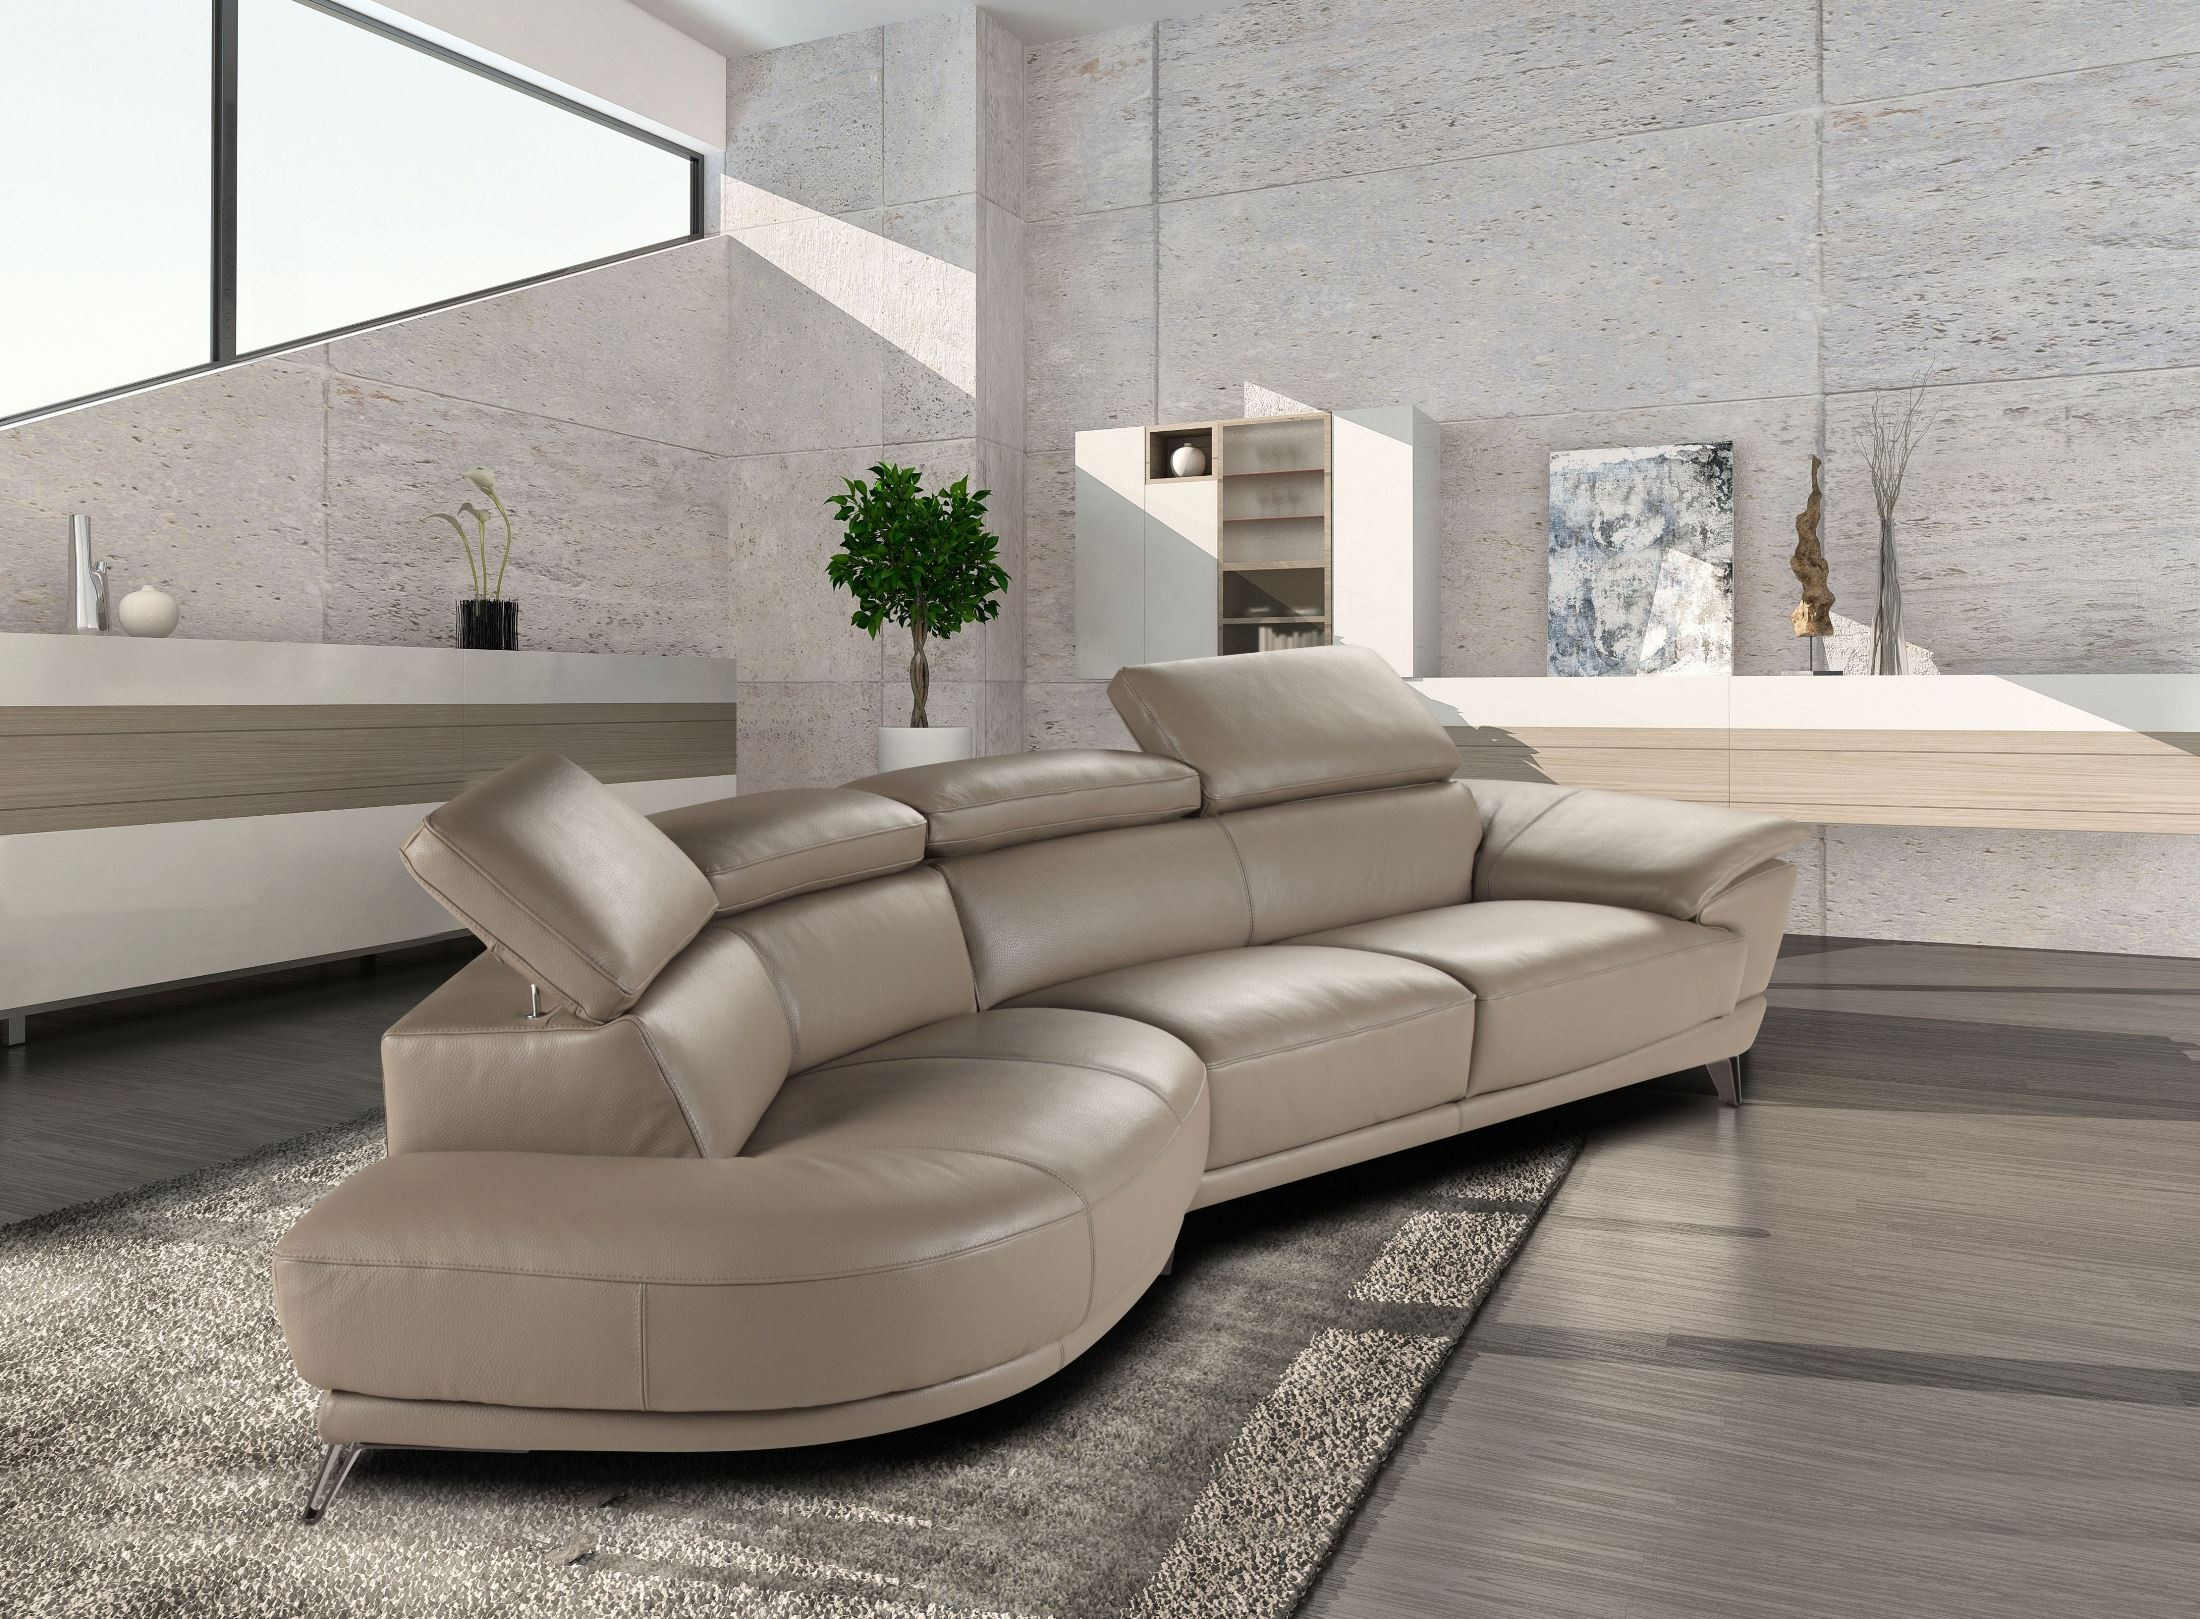 Marisol taupe italian laf chaise leather sectional from j for Brighton taupe 3 piece chaise and sofa set